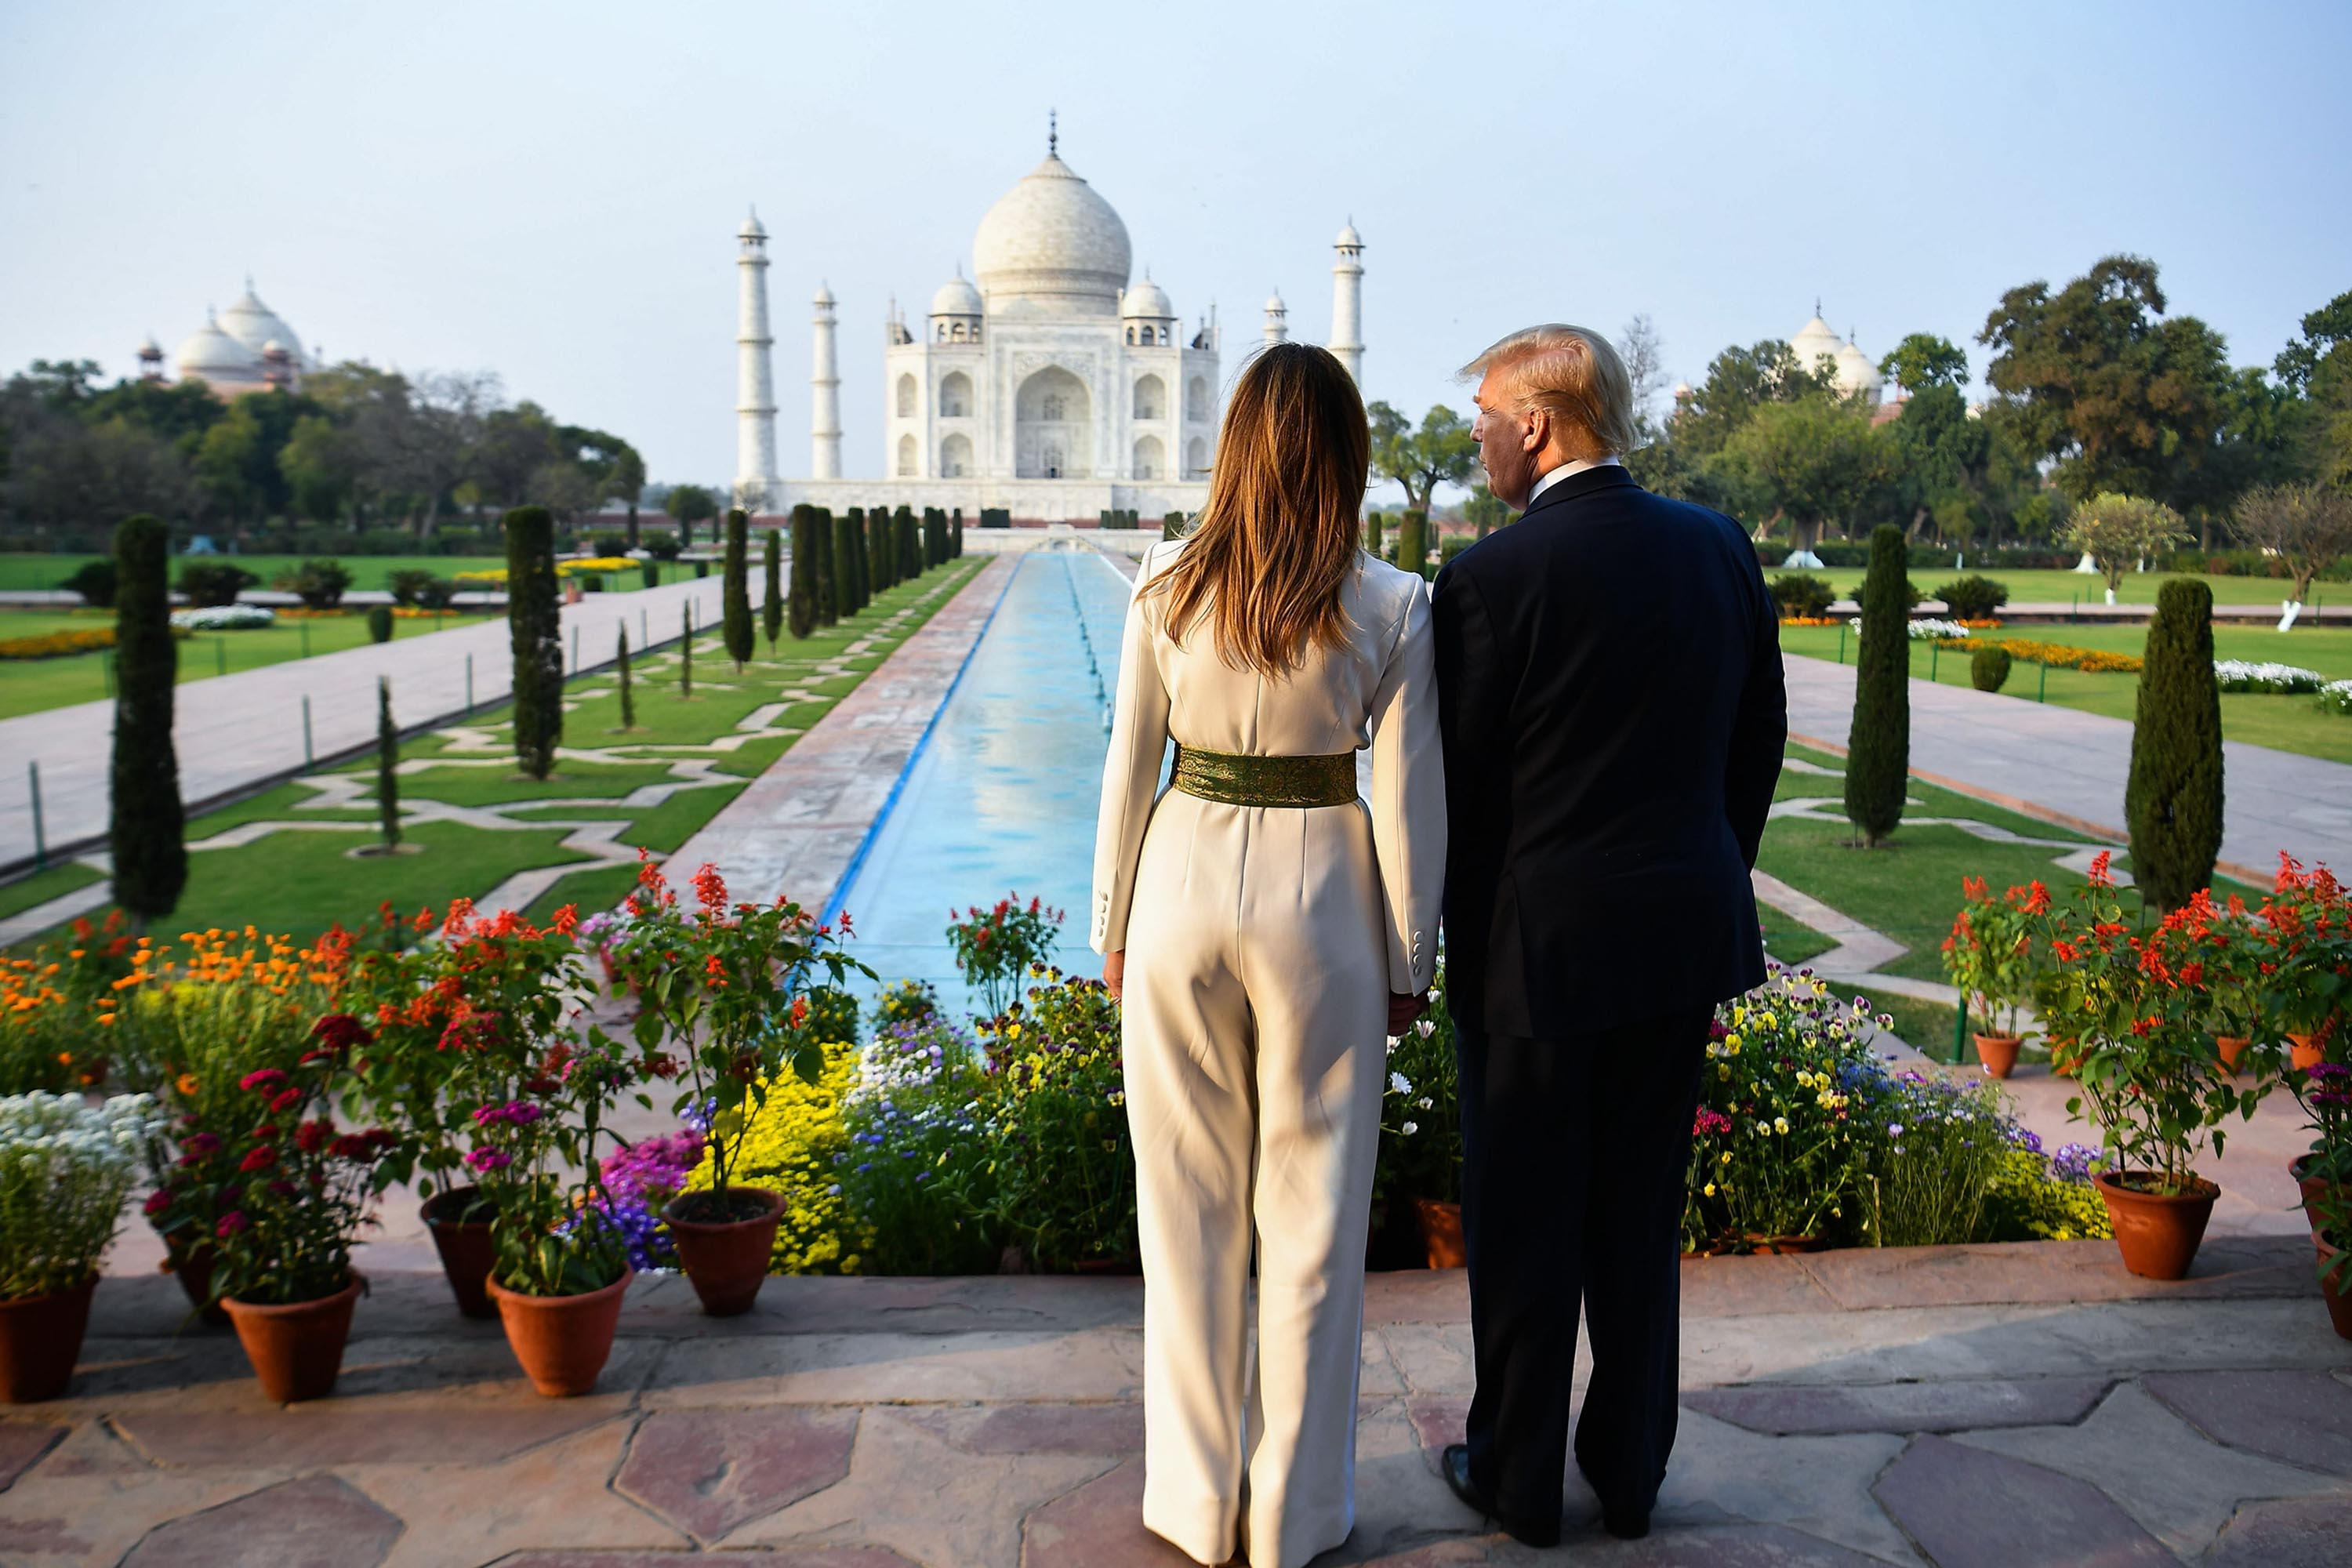 Trumps cherish an iconic moment — touring the Taj Mahal